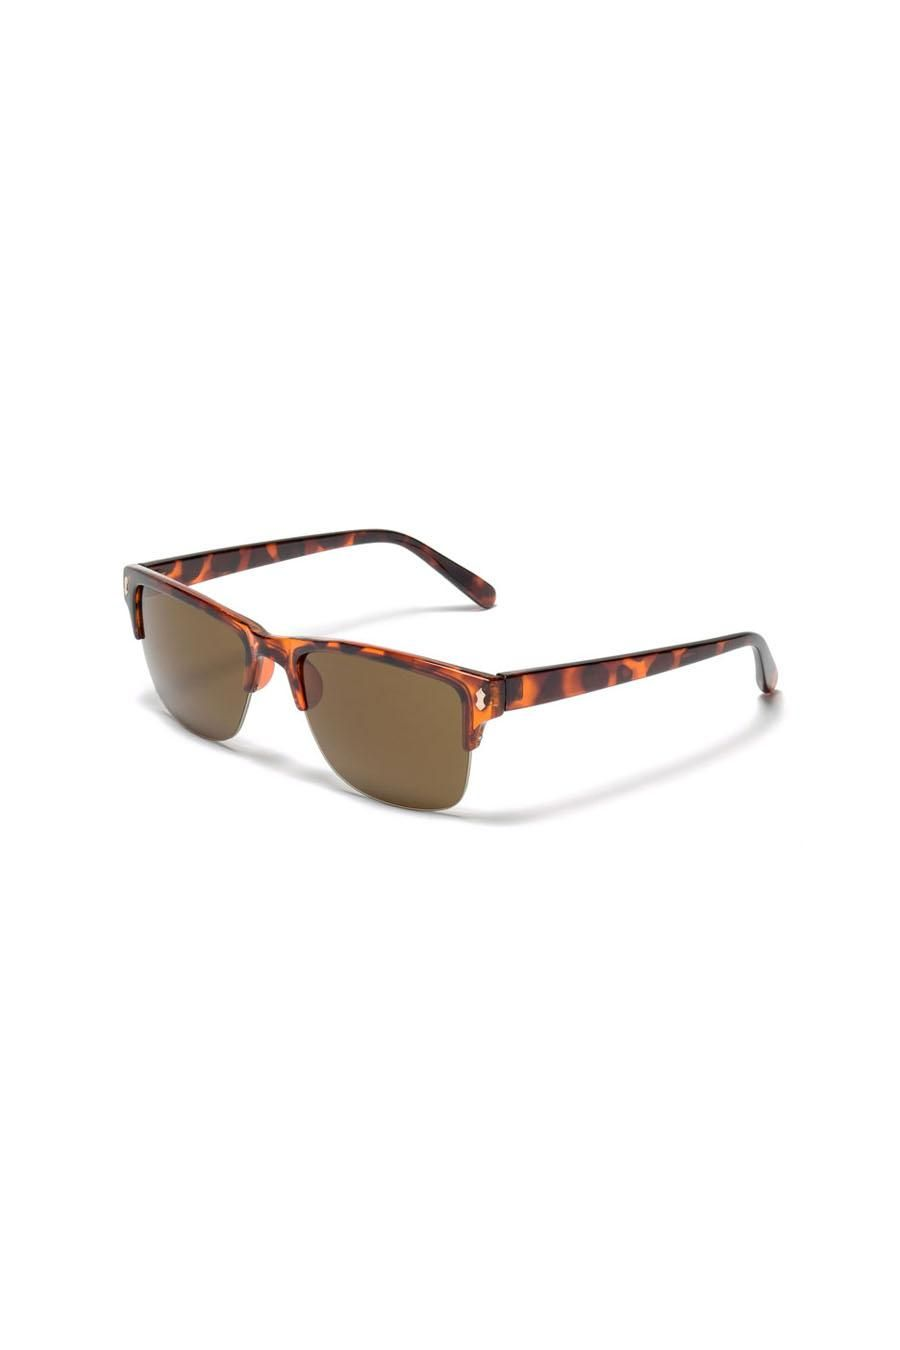 Club 2 Sunglasses by R & F